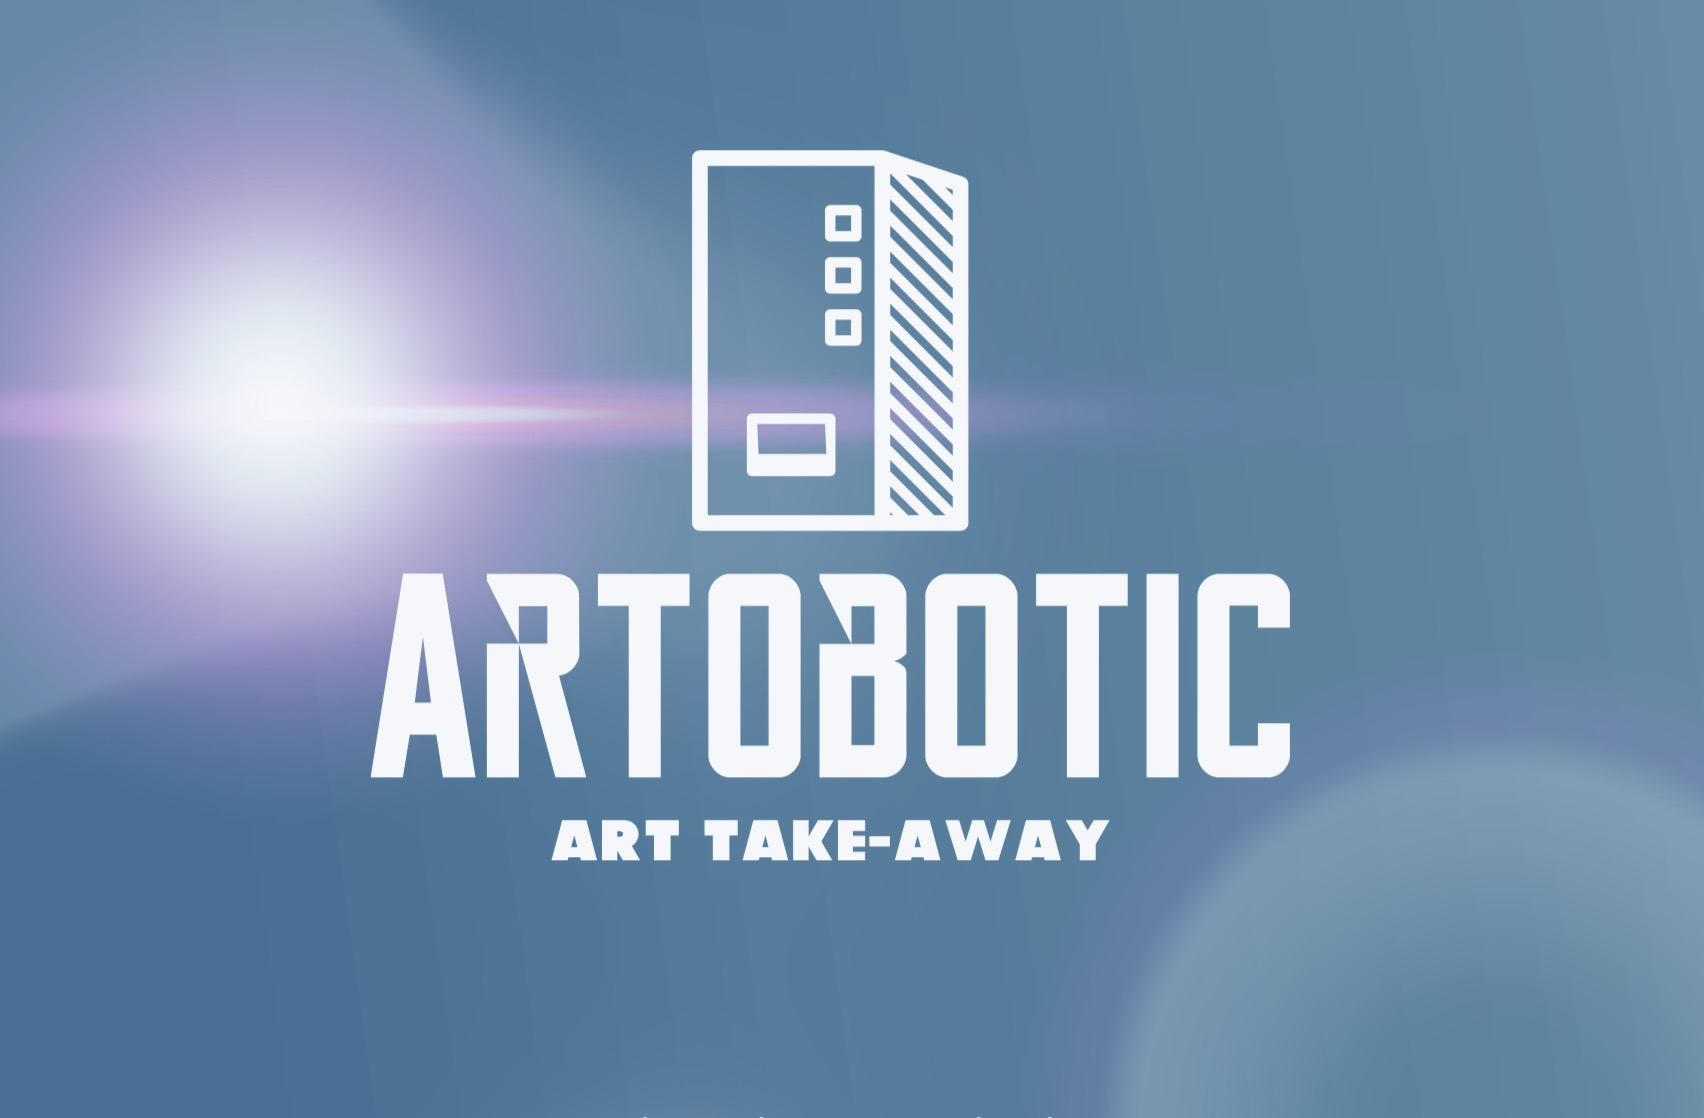 Artobotic, art vending machine